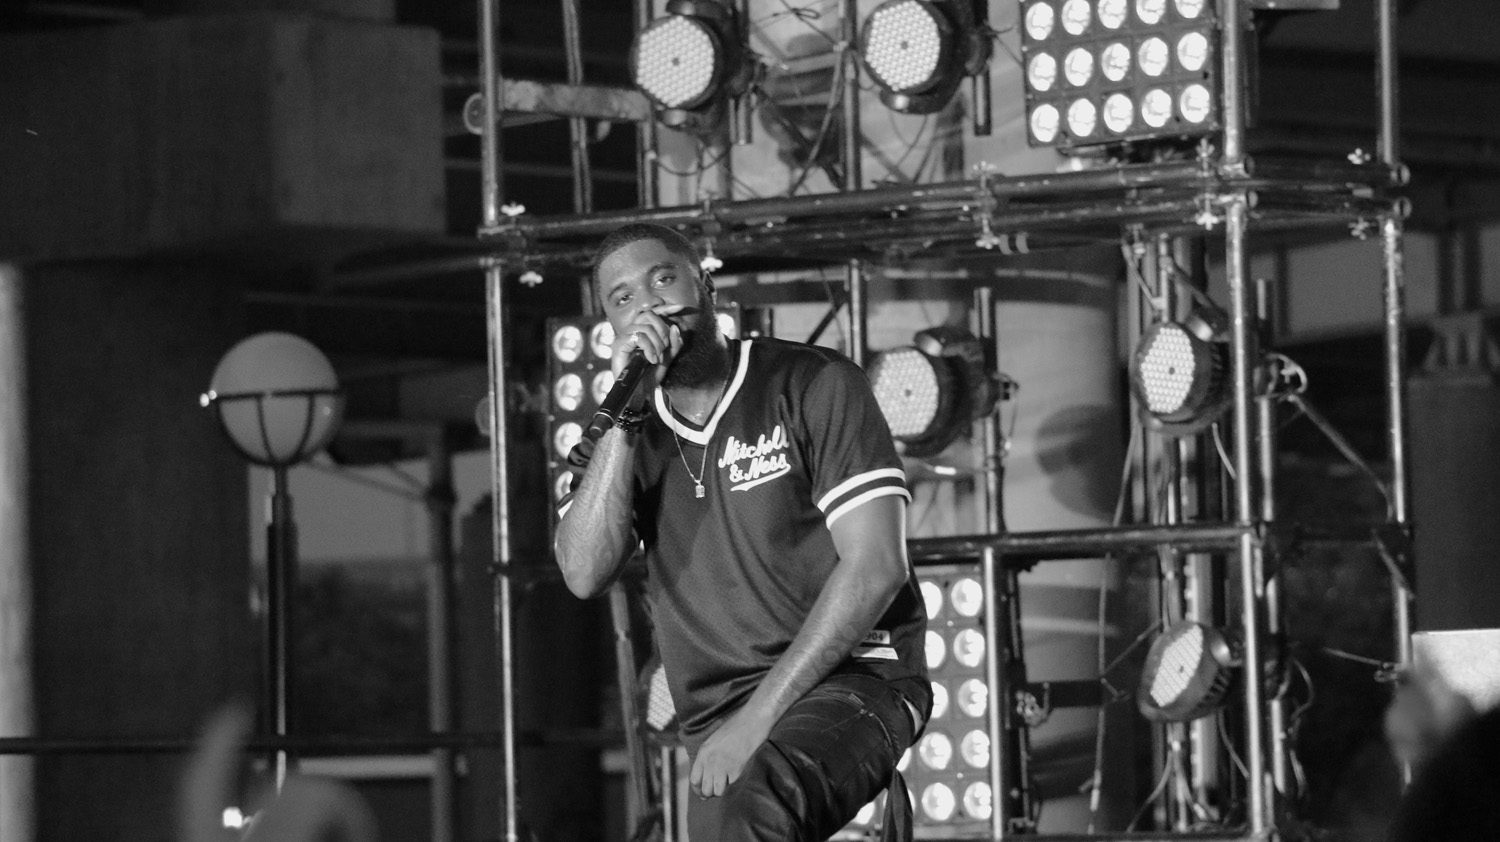 Big K.R.I.T. performs at the Forecastle Festival in Louisville, Ky., on Friday, July 17, 2015. (MTSU Sidelines / John Connor Coulston)